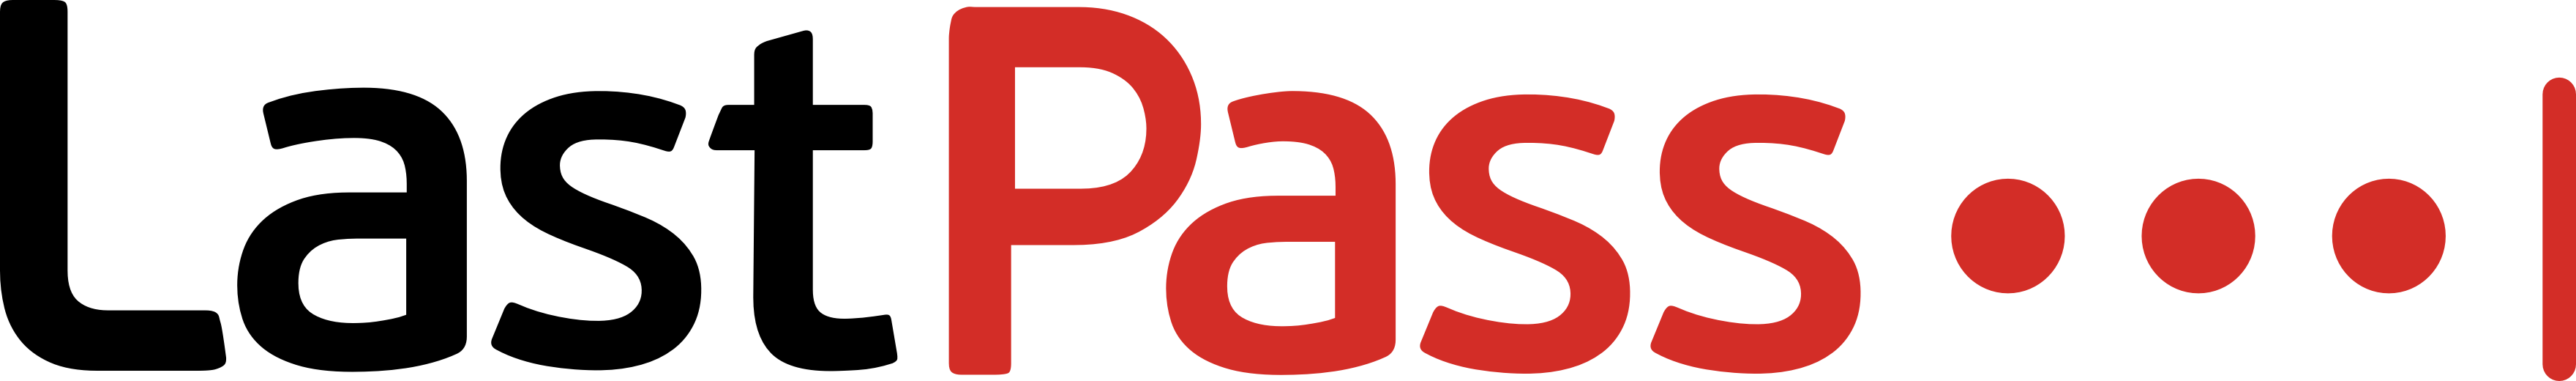 Image result for last pass logo png